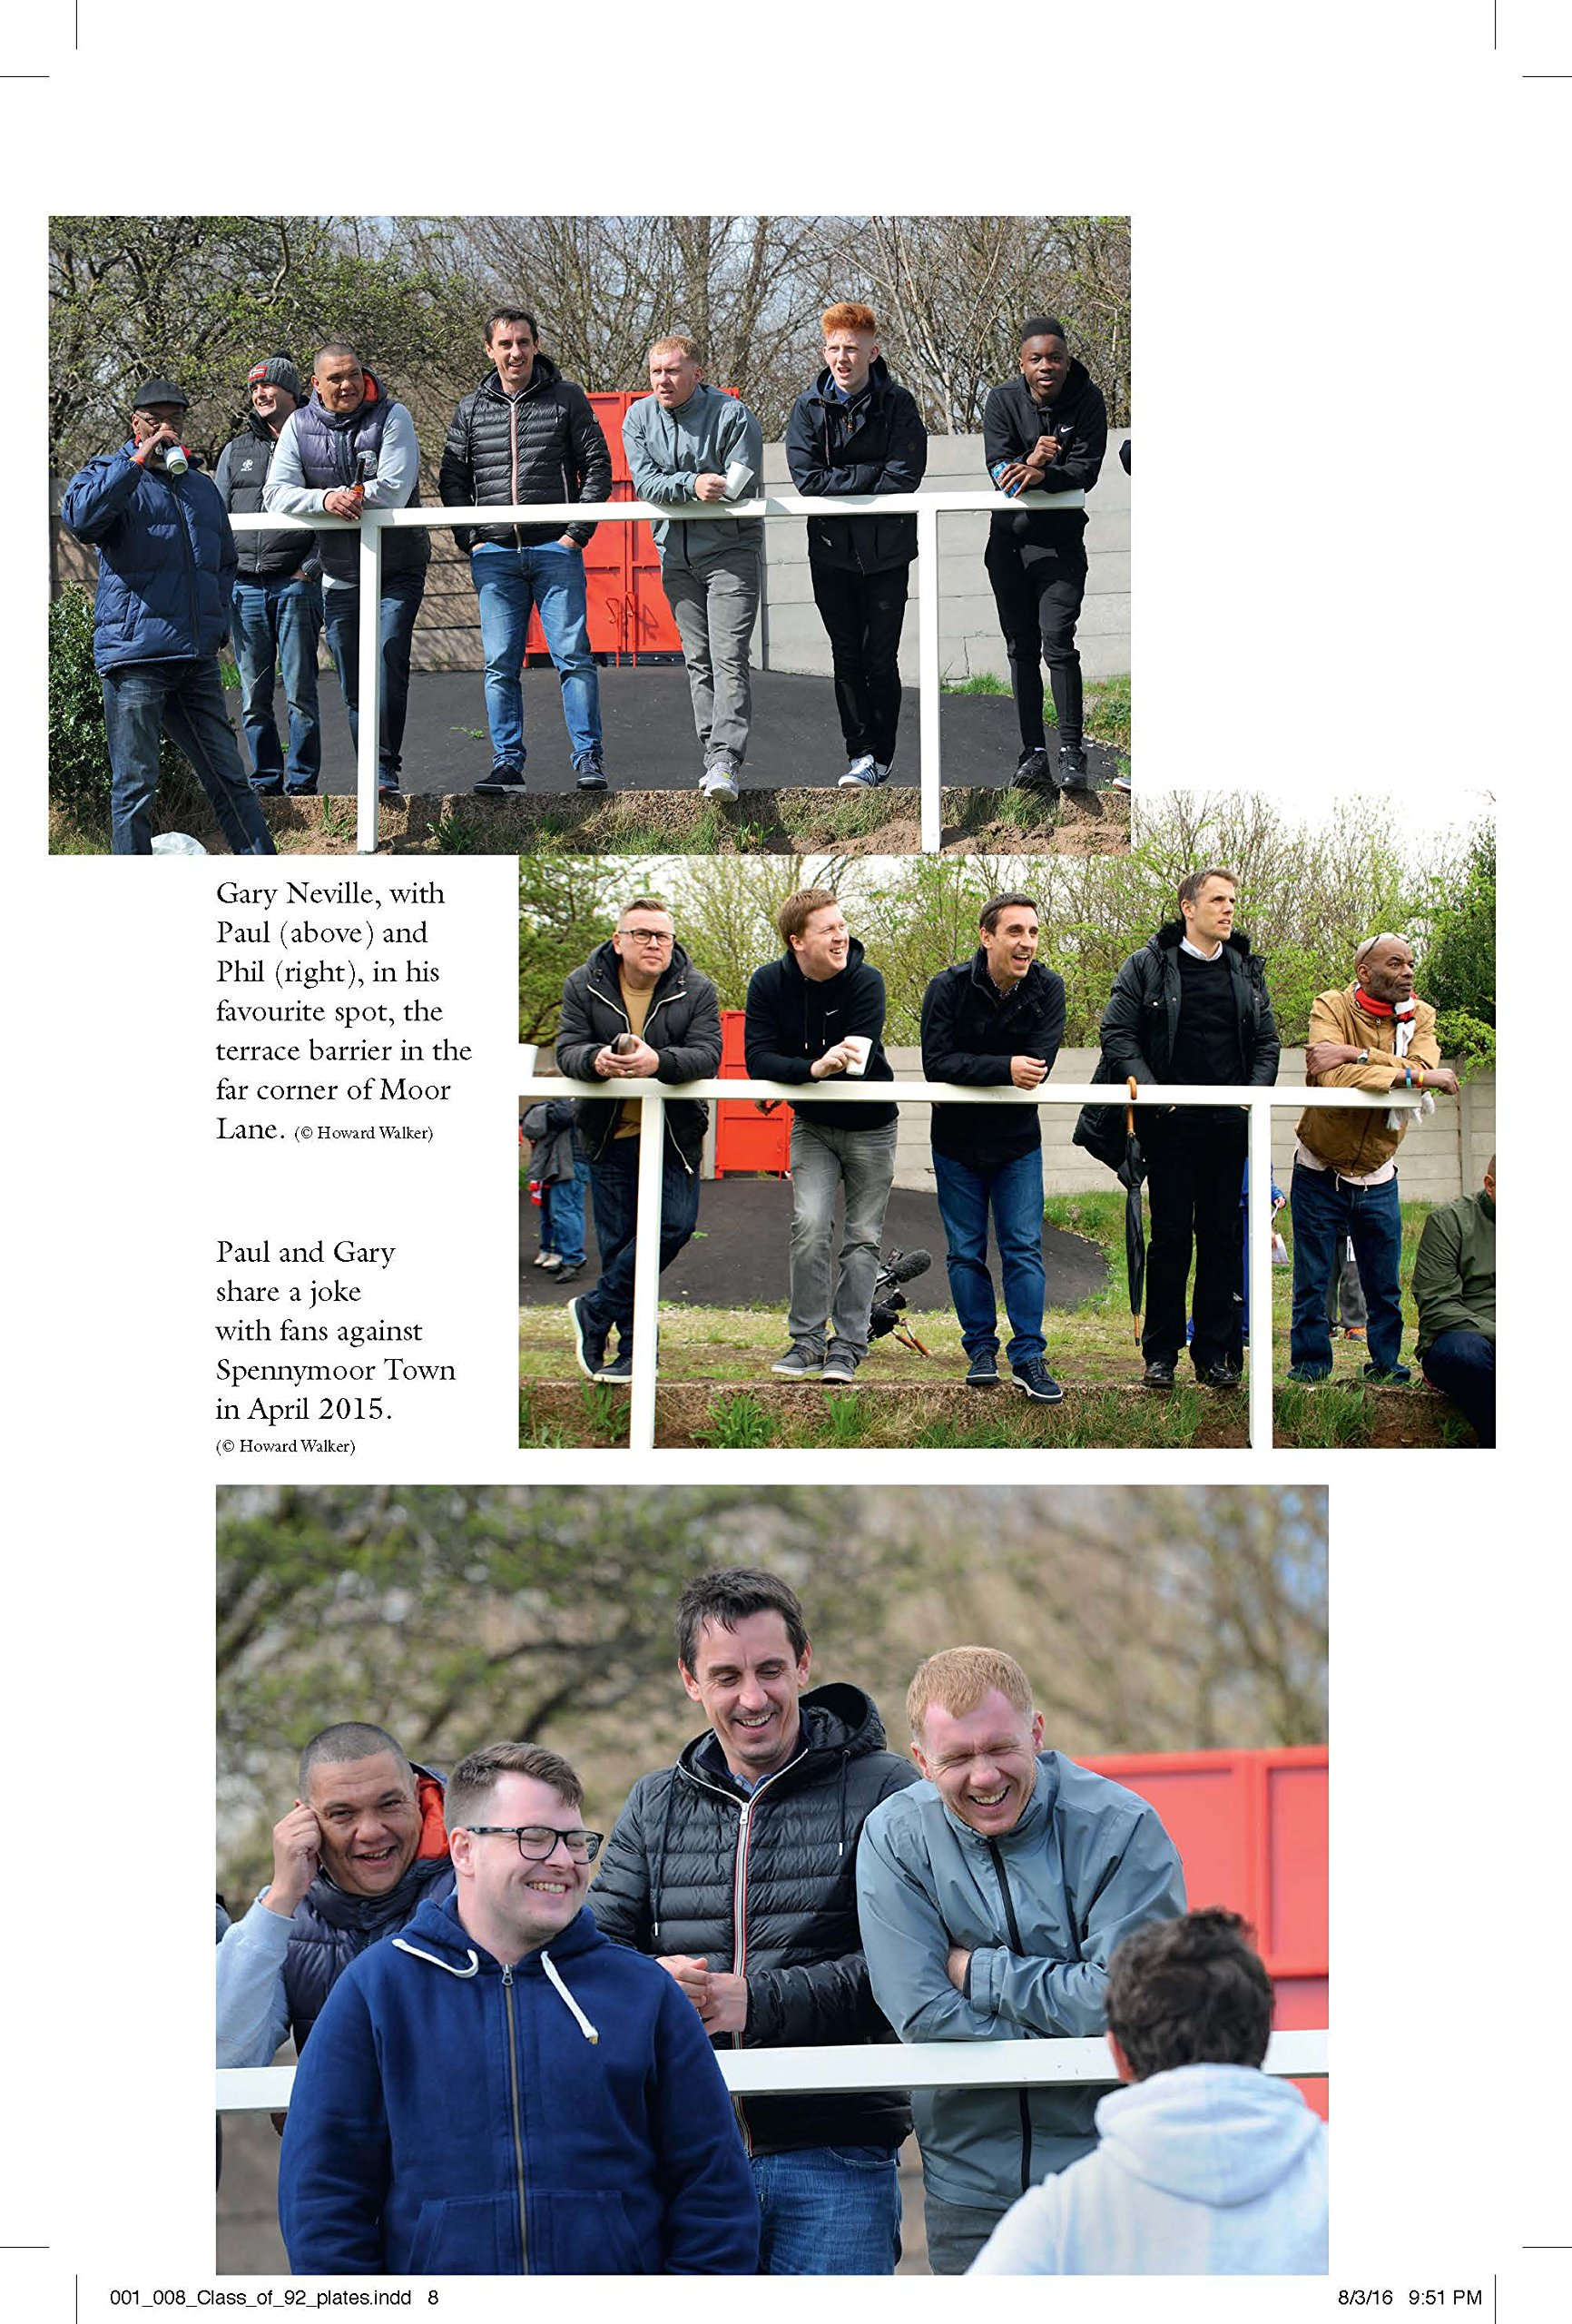 Fans taking pictures with cell phone behind barrier stock photo - Class Of 92 Out Of Our League Amazon Co Uk Gary Neville Phil Neville Paul Scholes Ryan Giggs Nicky Butt Robert Draper 9781785941795 Books